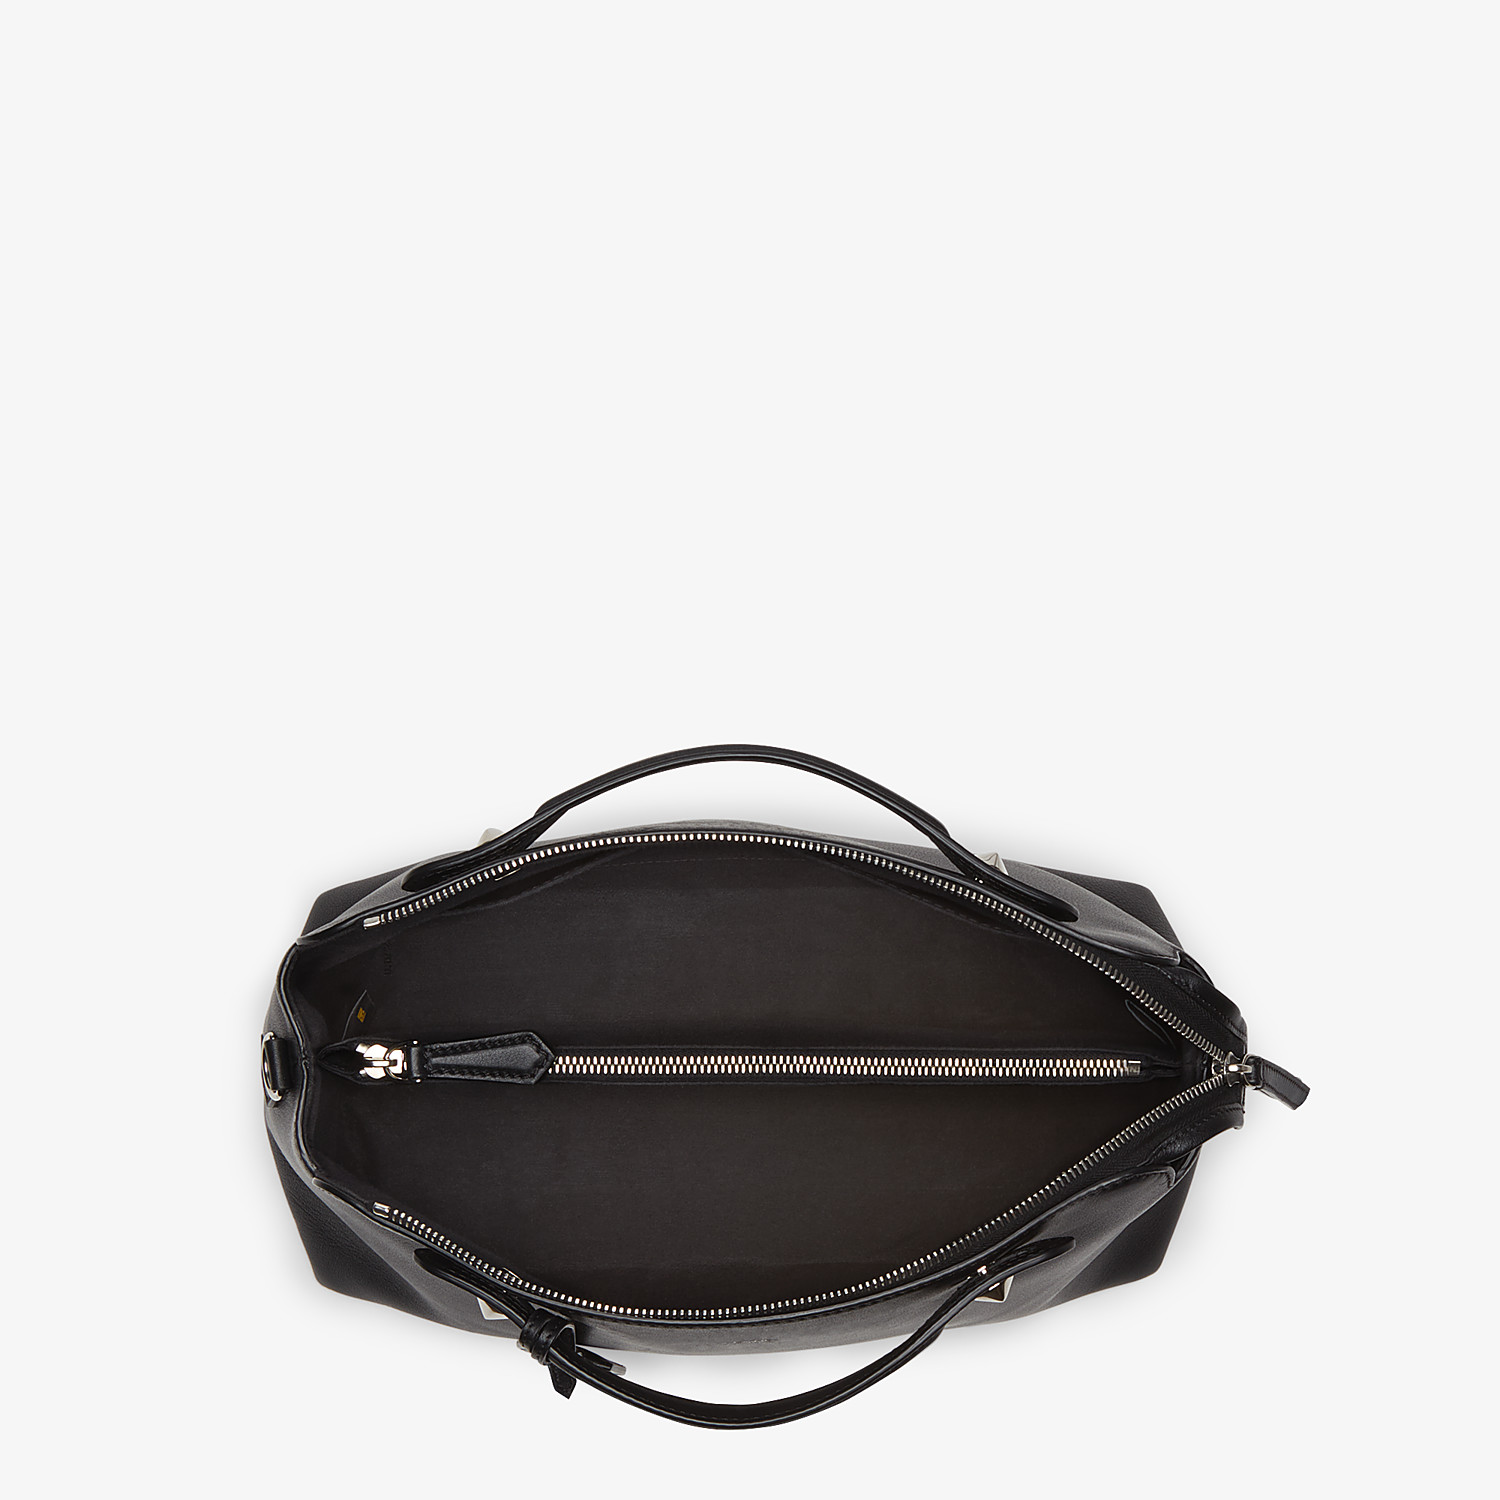 FENDI LARGE BY THE WAY - in black leather - view 4 detail